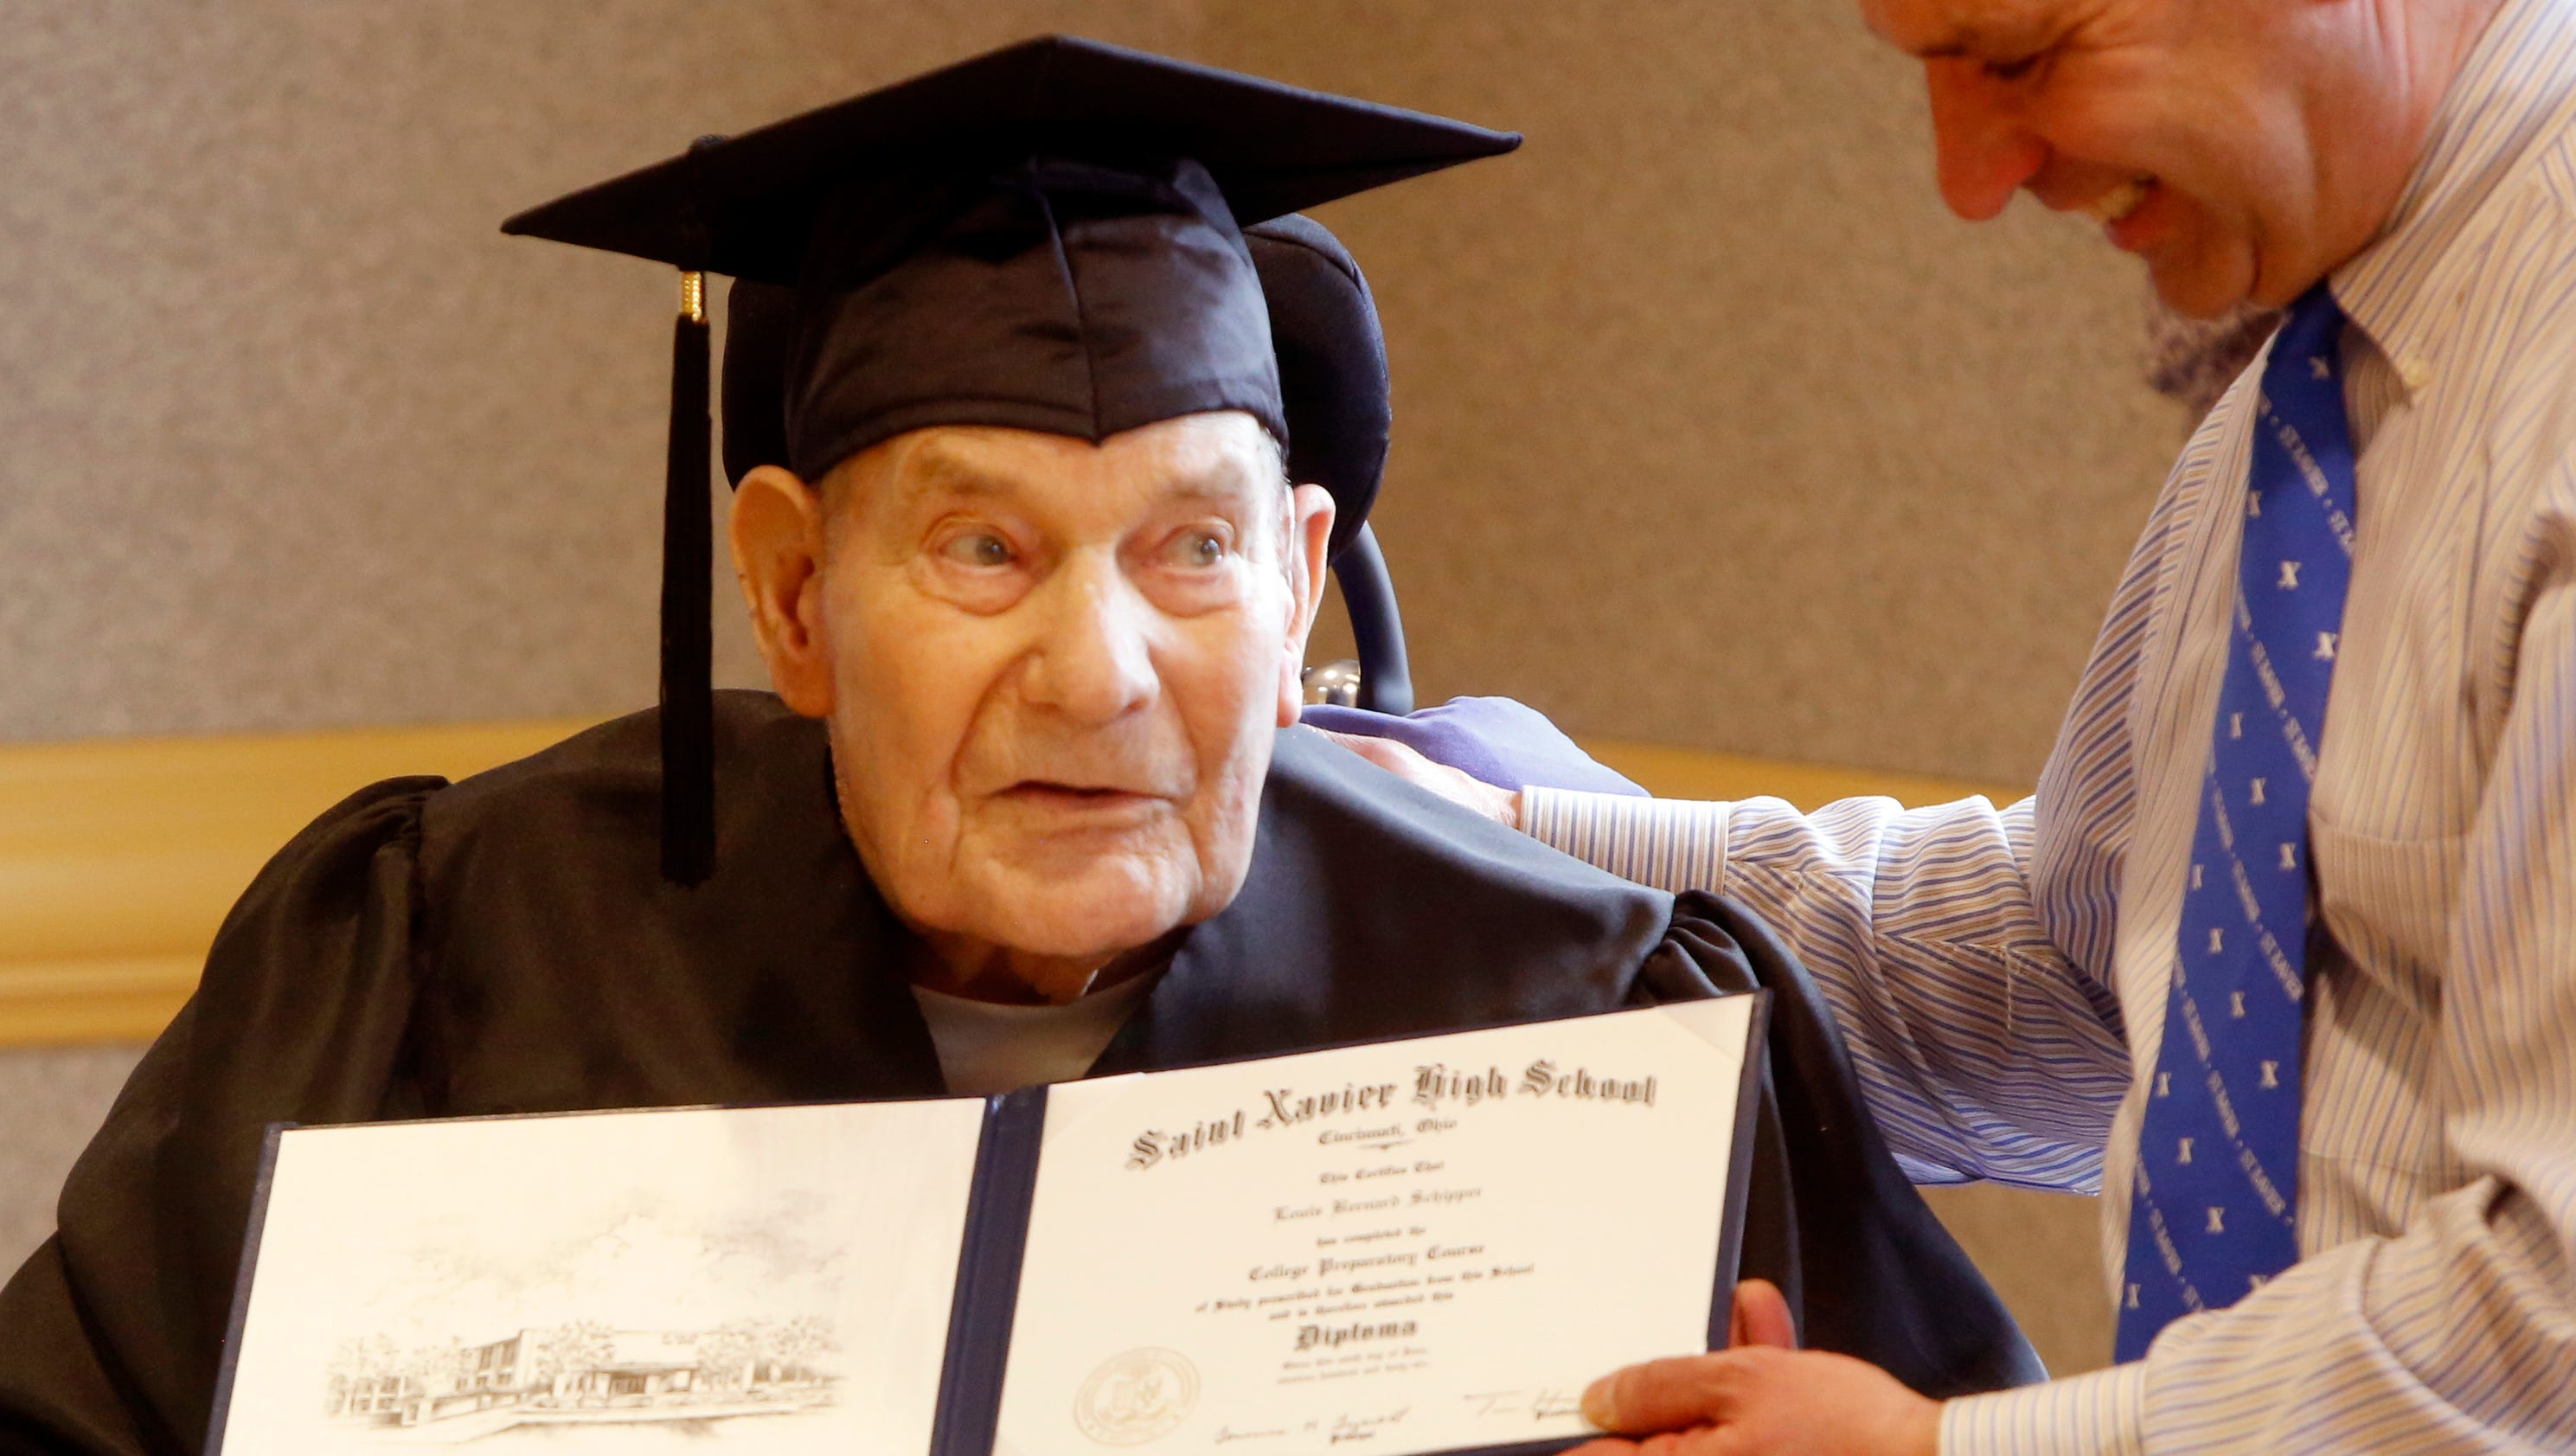 Lou Schipper was a high school student who left school to fight WWII. The veteran received his diploma this past Friday at the age of 90.